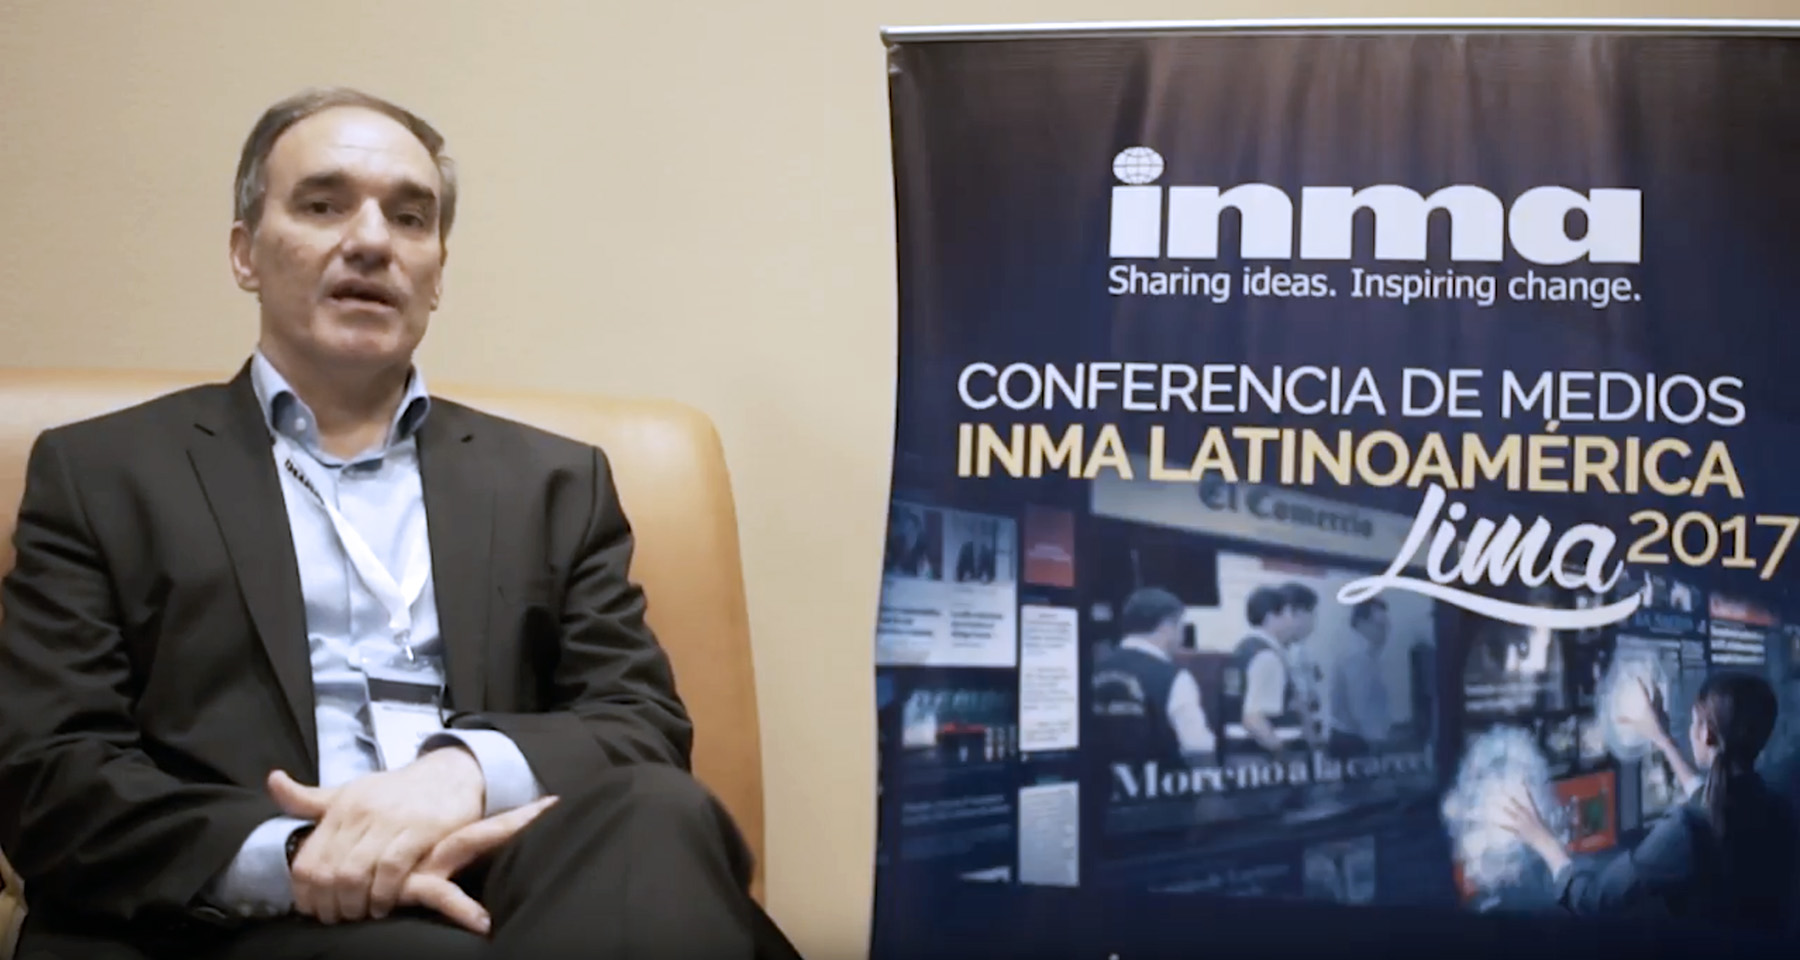 Audience changes bring challenges to Latin American media companies